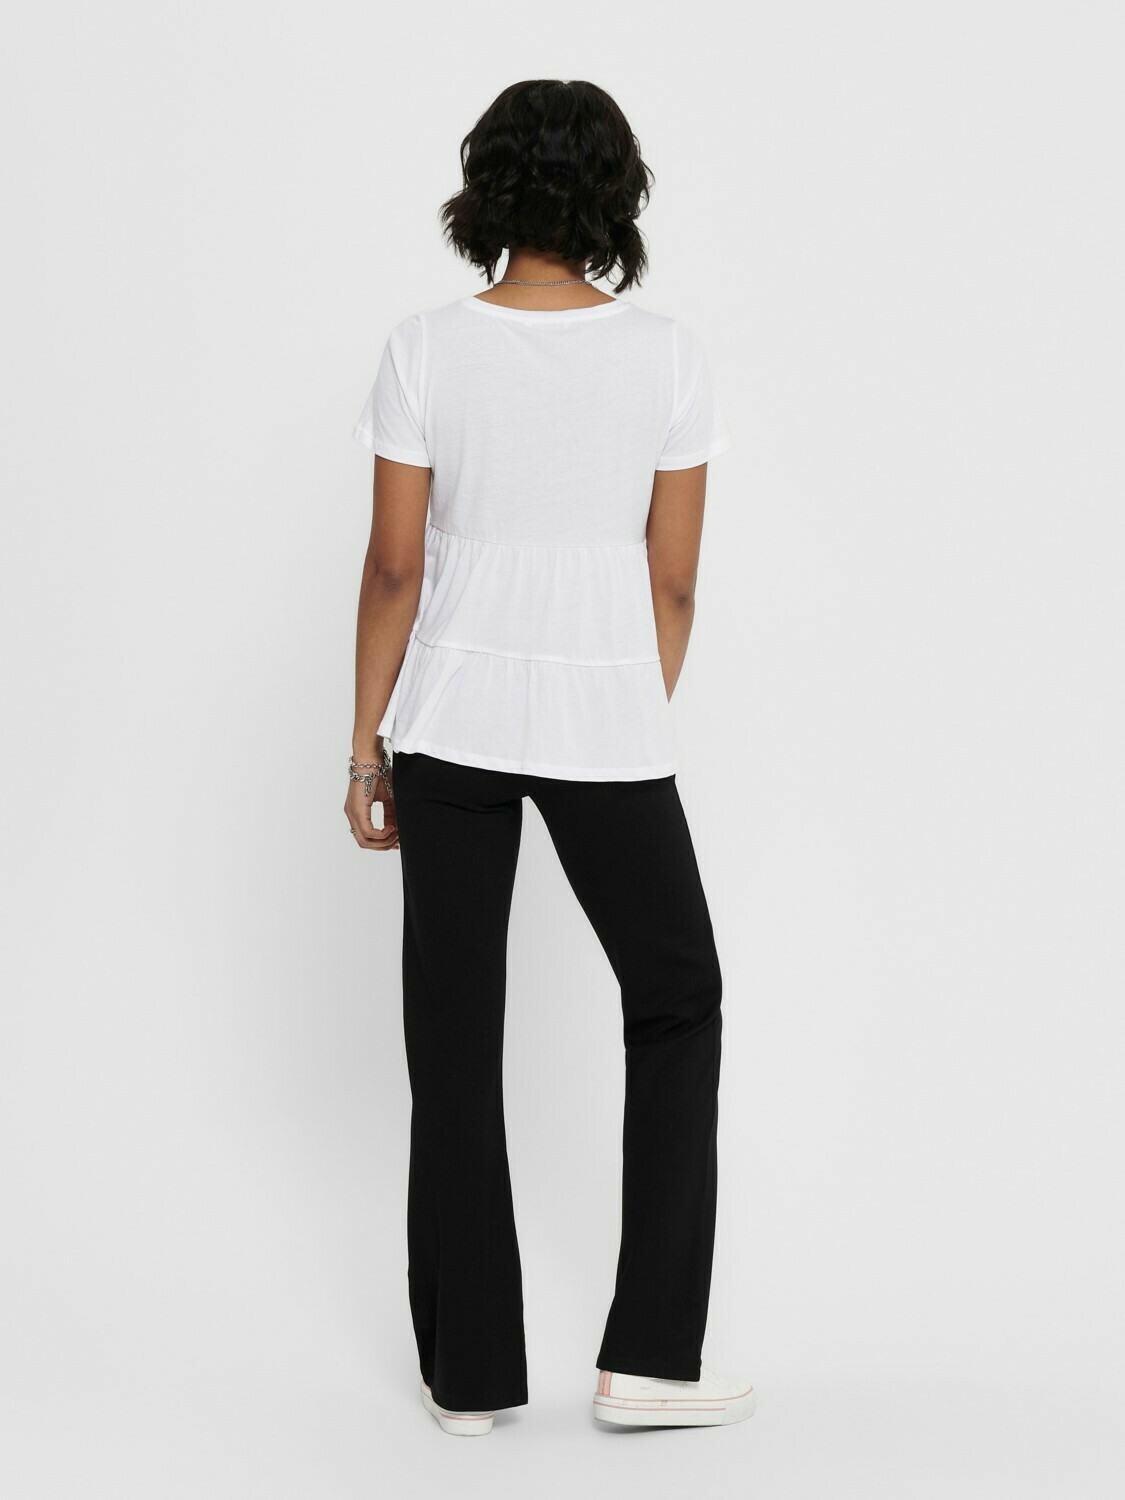 JdyPretty Flare pants NOOS